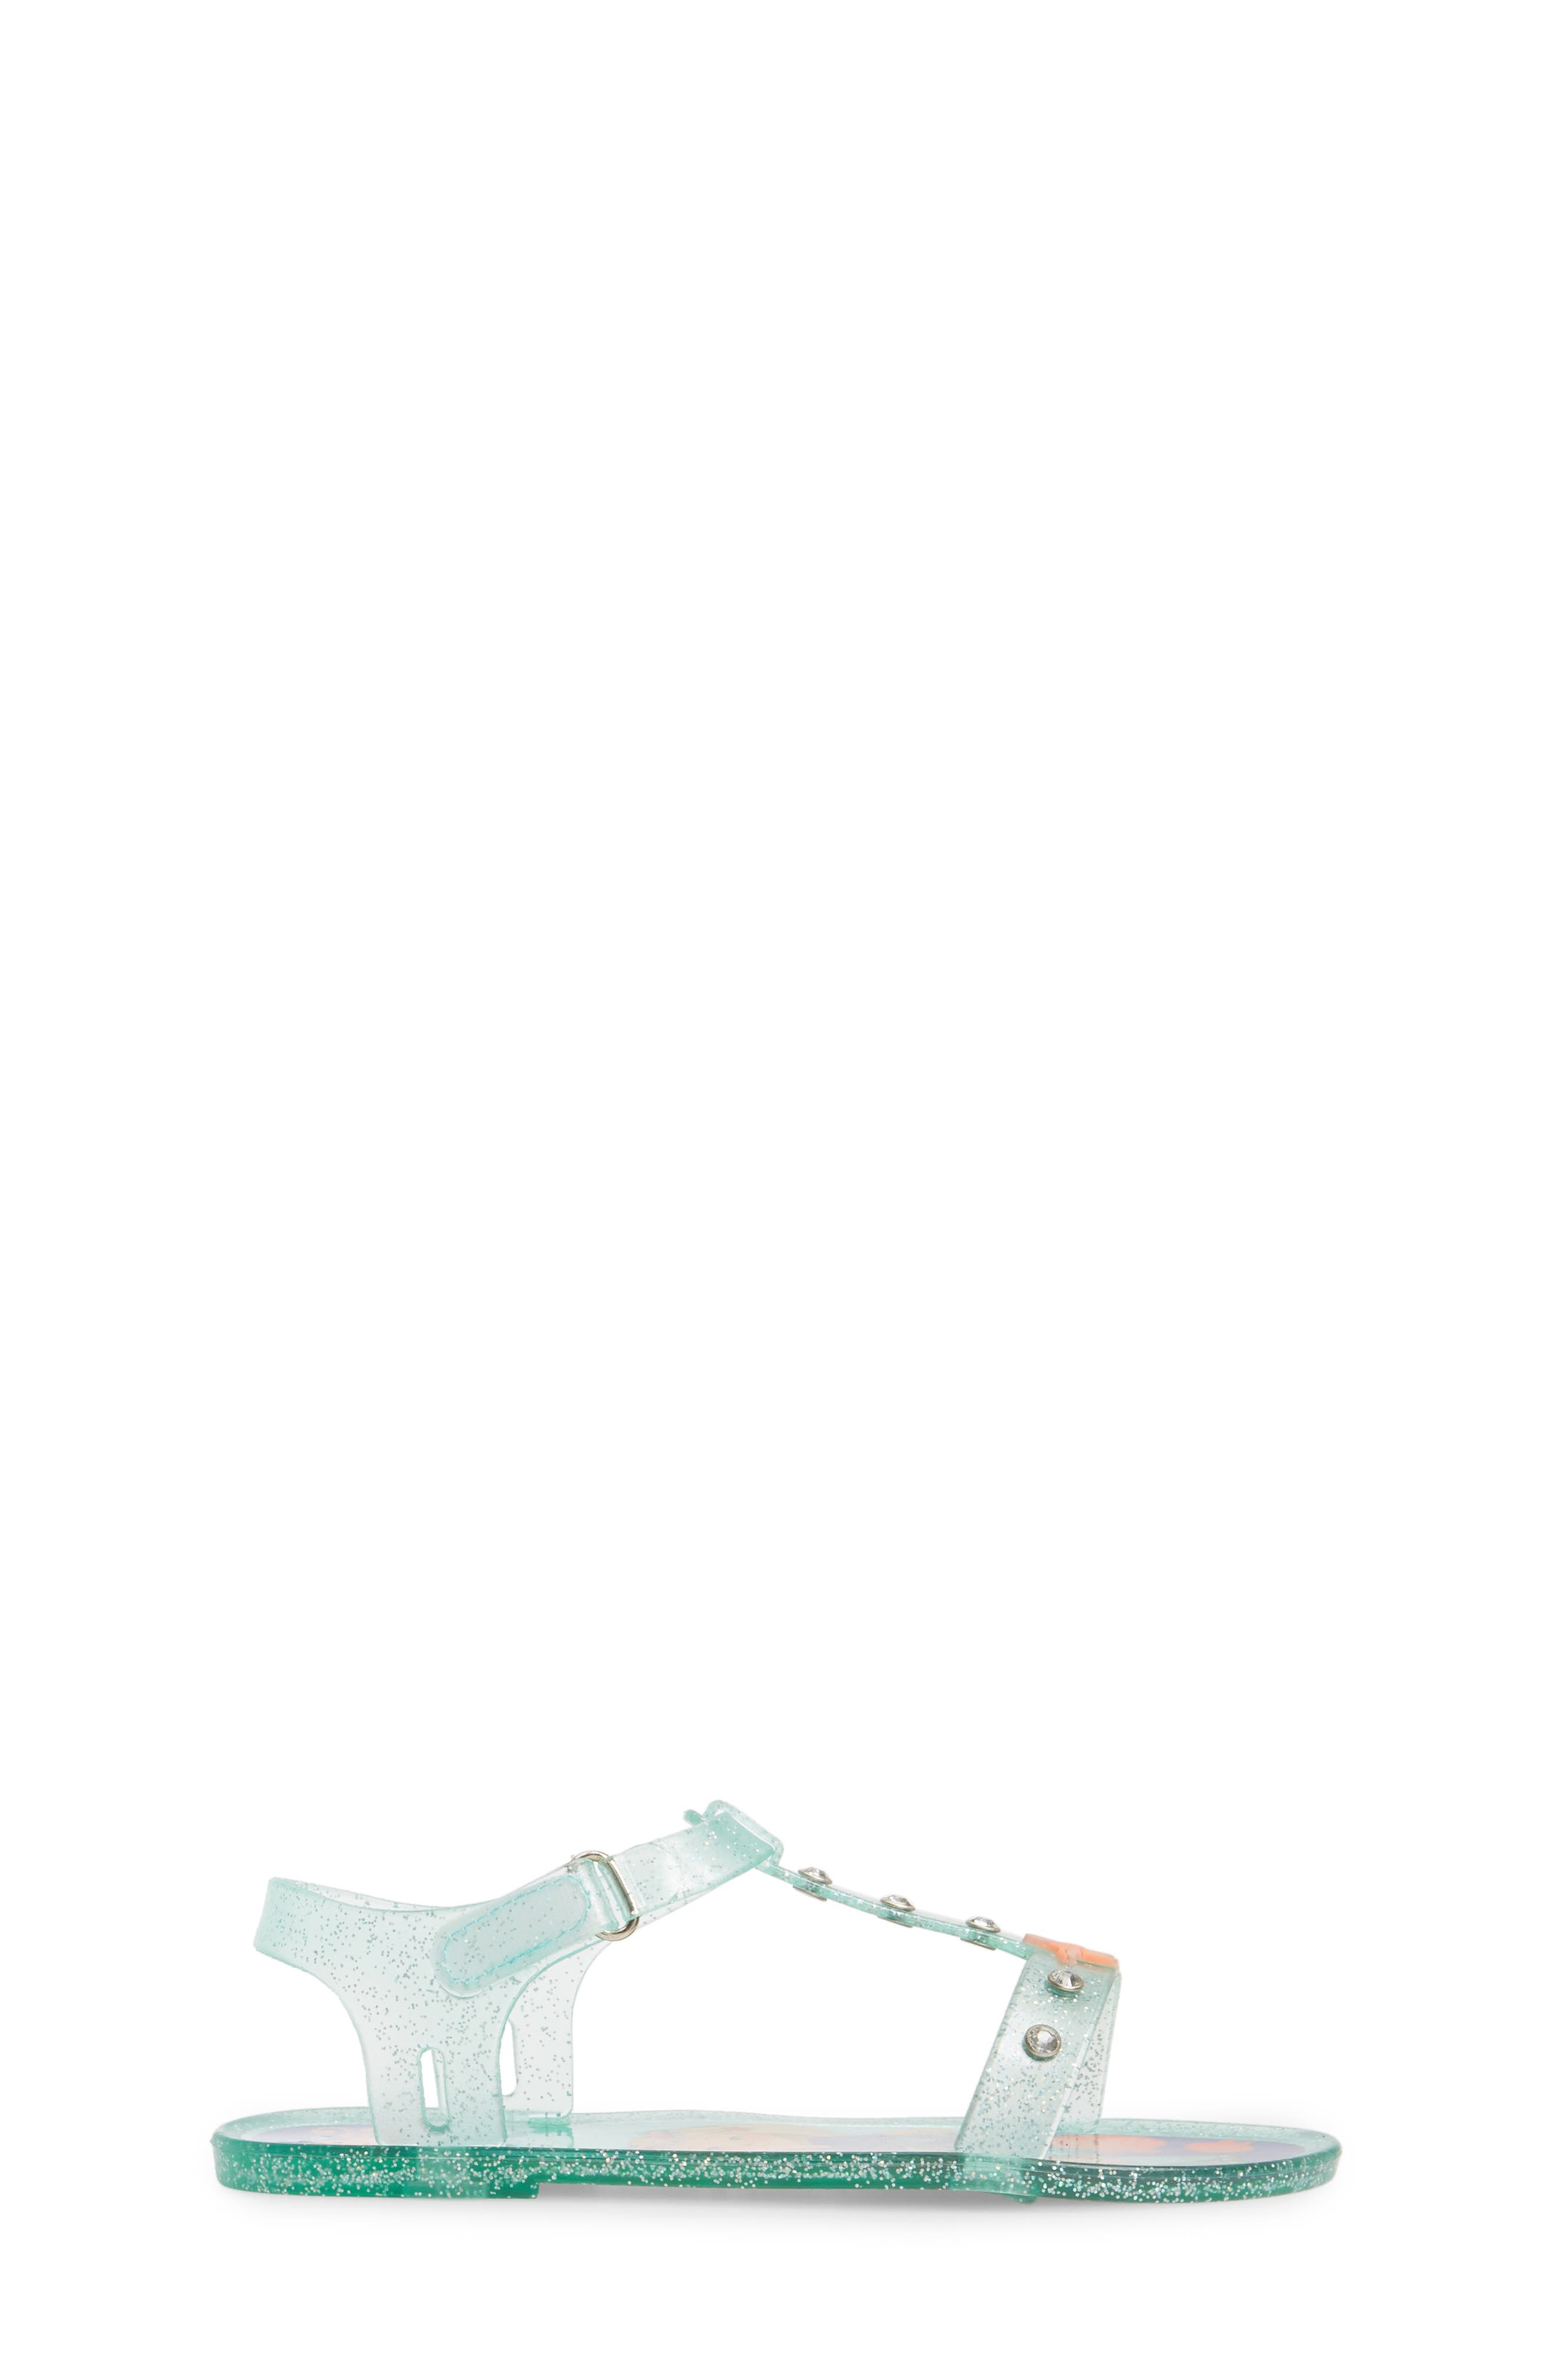 Camille Glitter Jelly Sandal,                             Alternate thumbnail 3, color,                             407